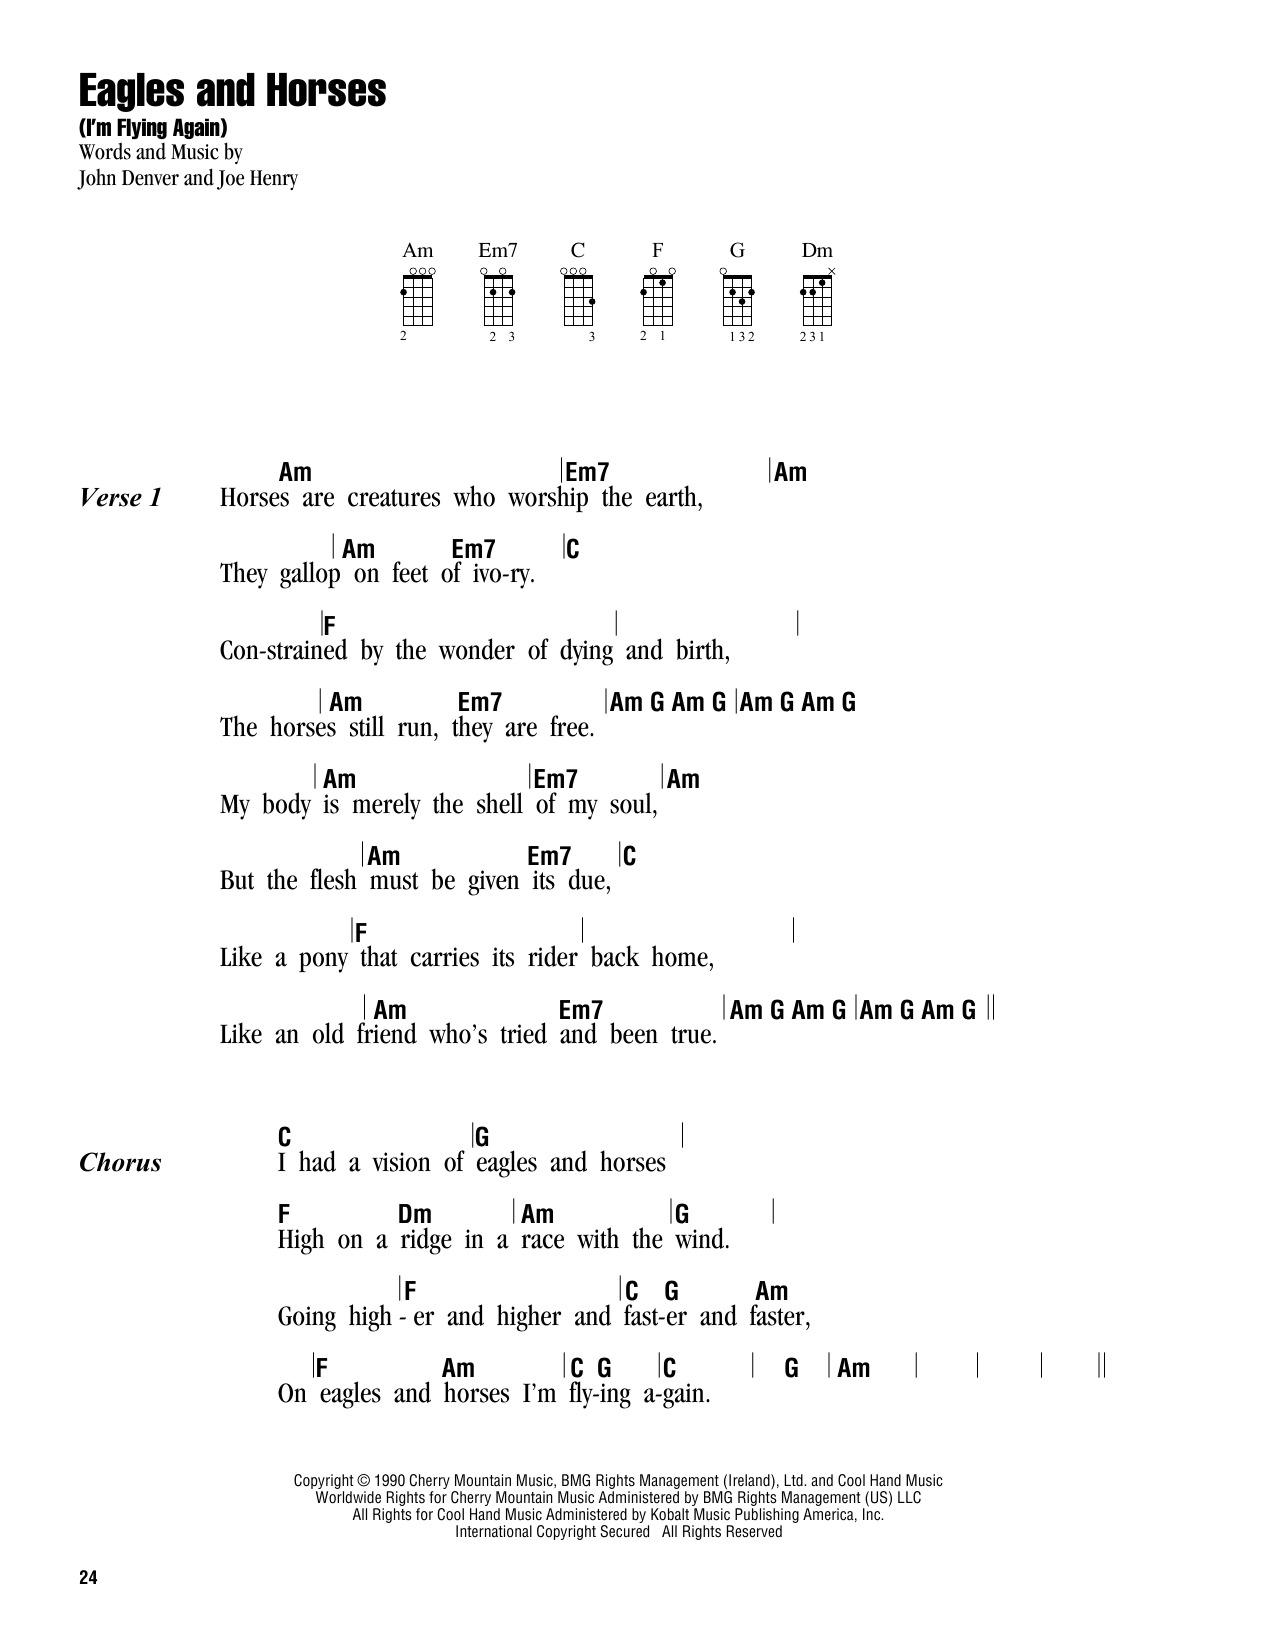 Tablature guitare Eagles And Horses (I'm Flying Again) de John Denver - Ukulele (strumming patterns)